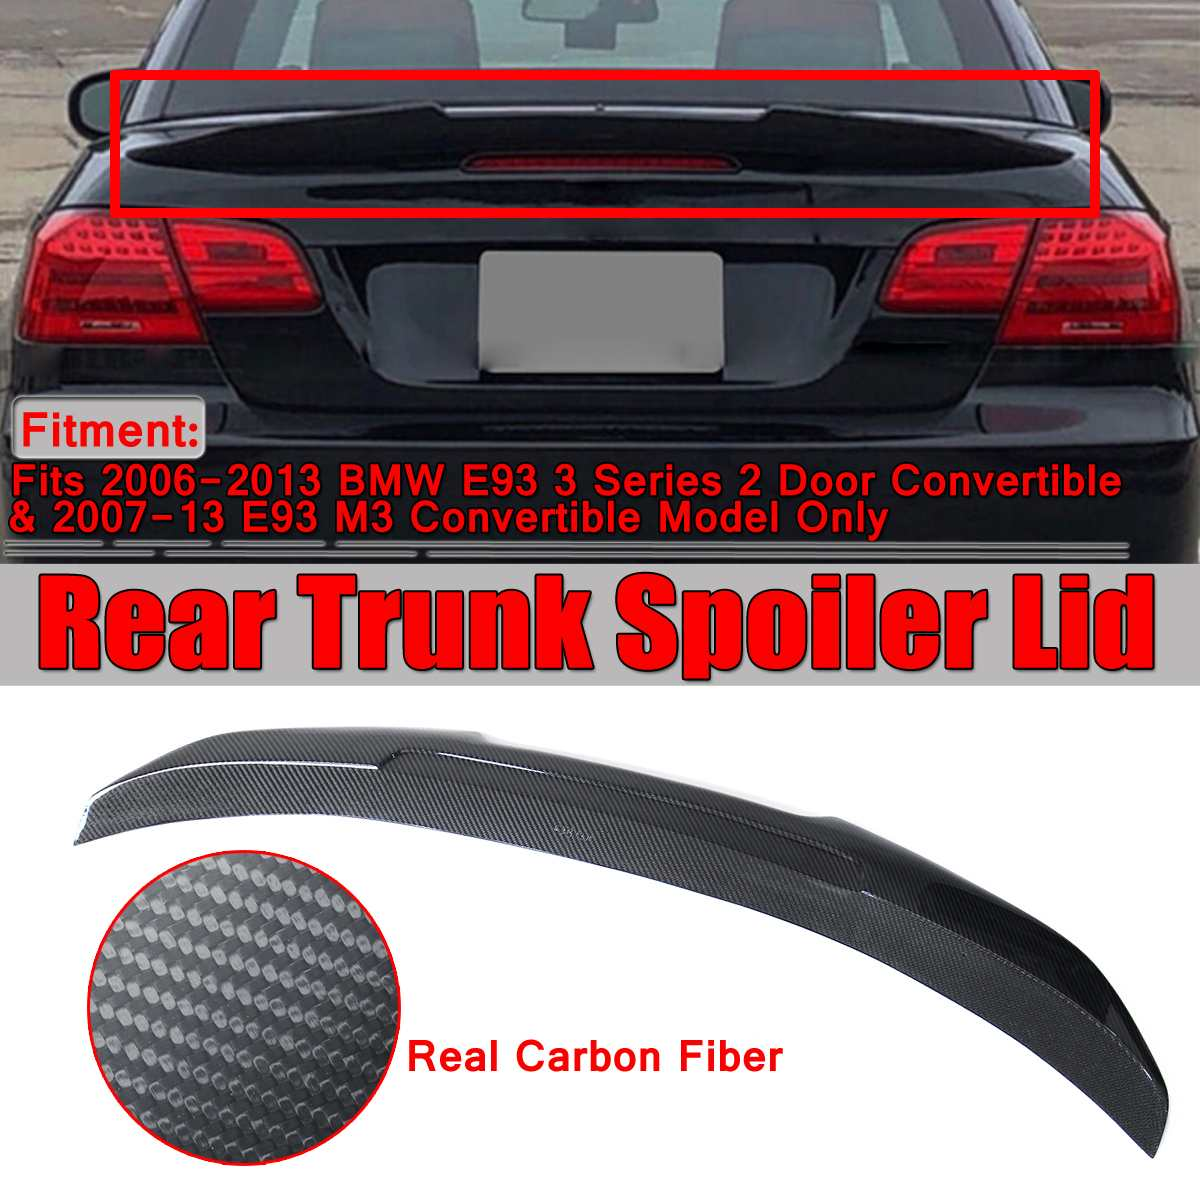 New Real Carbon Fiber HighKick Car Trunk Rear Racing Spoiler Wing Lid For BMW E93 3 Series 2Dr 335i 328i M3 Convertible 2007-13 image